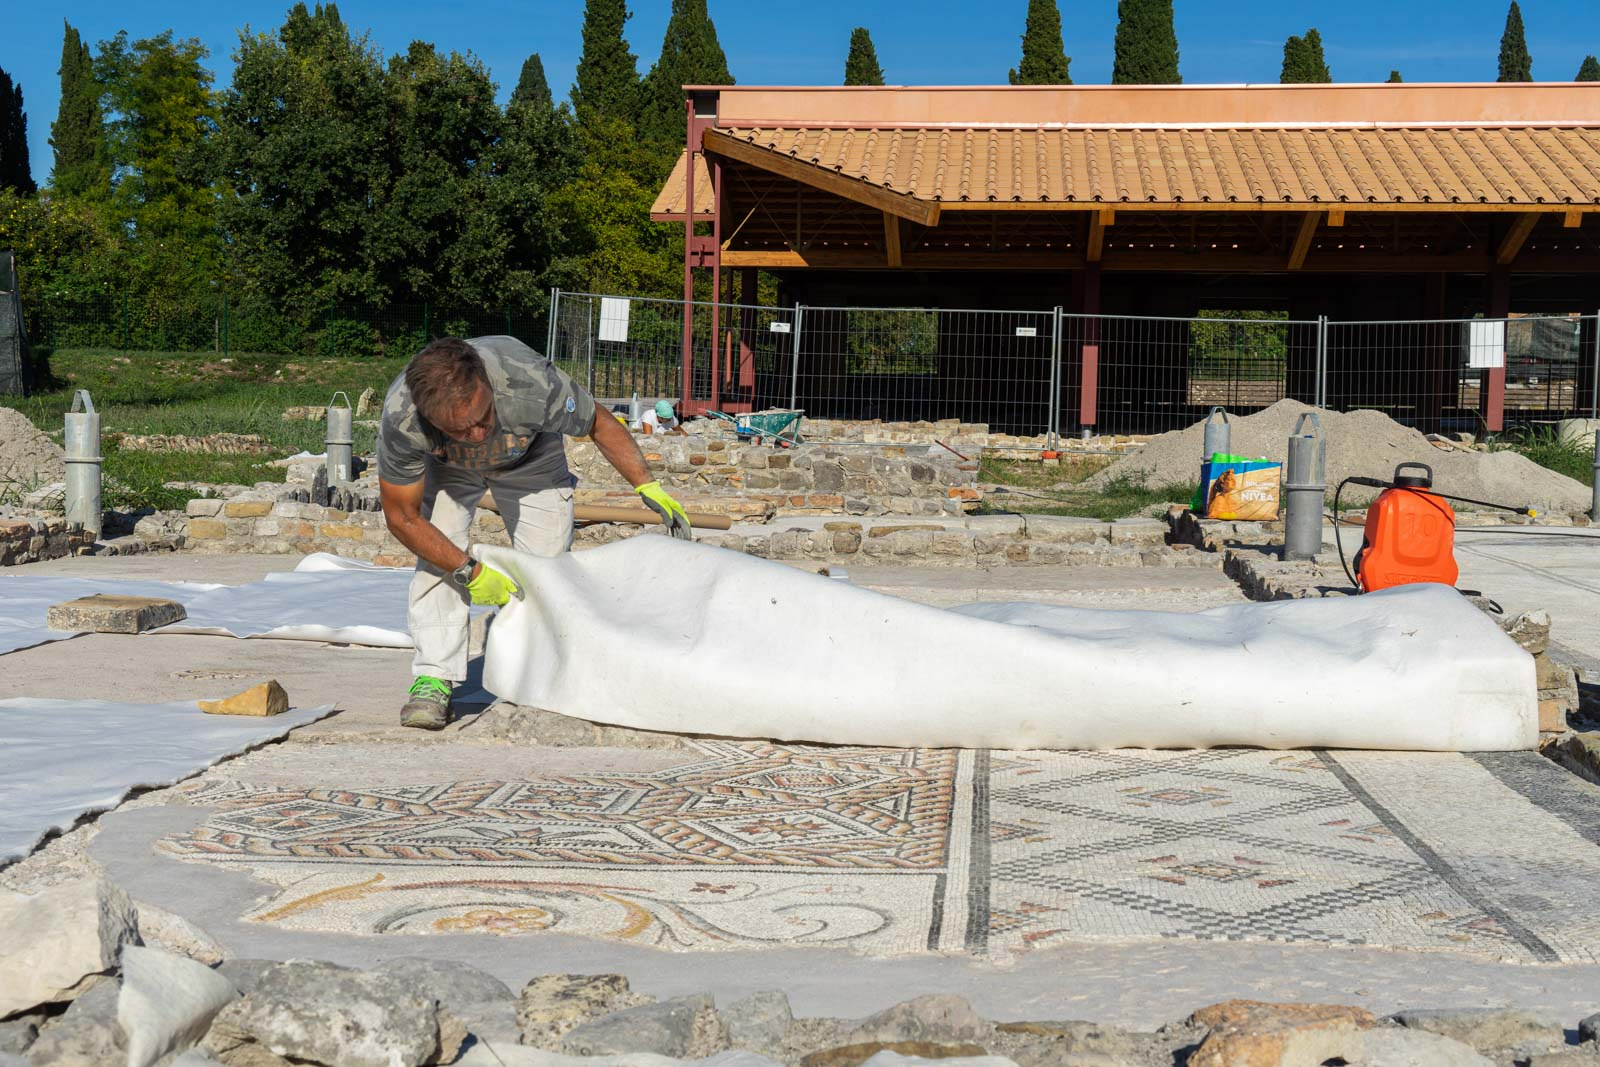 The best things to see in Aquileia, Italy